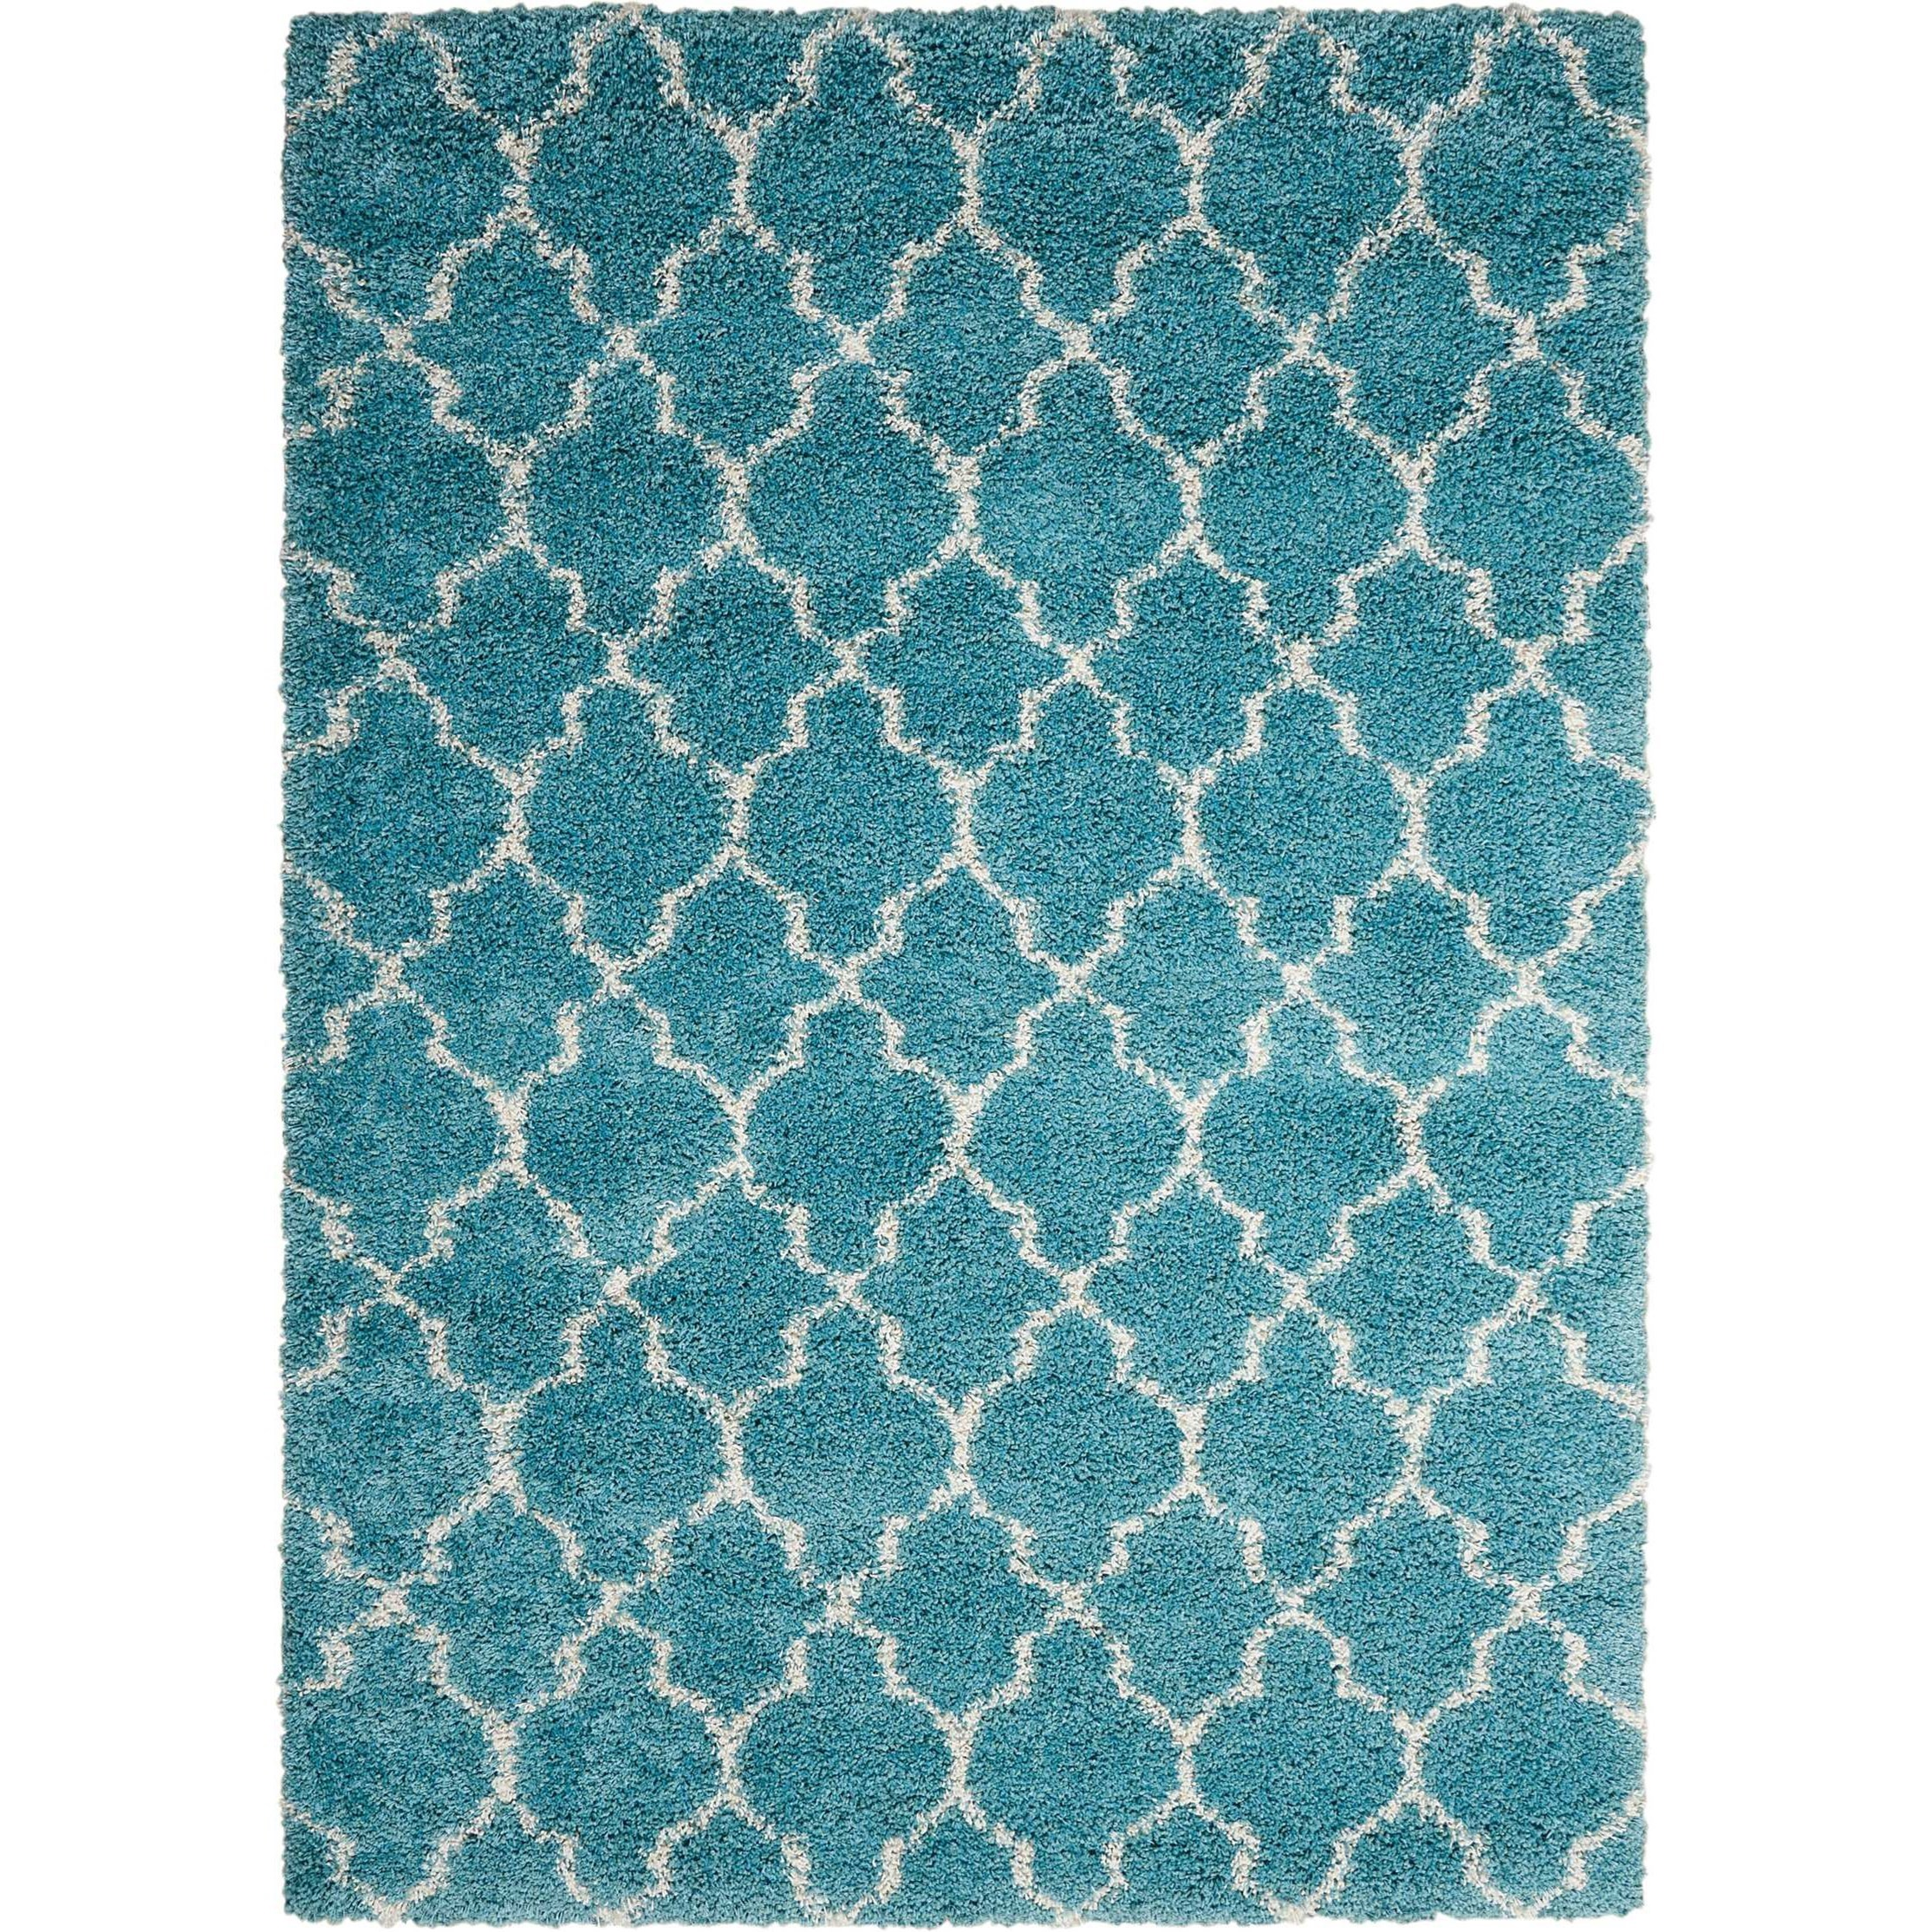 "Amore 6'7"" x 9'6"" Aqua Rectangle Rug by Nourison at Home Collections Furniture"